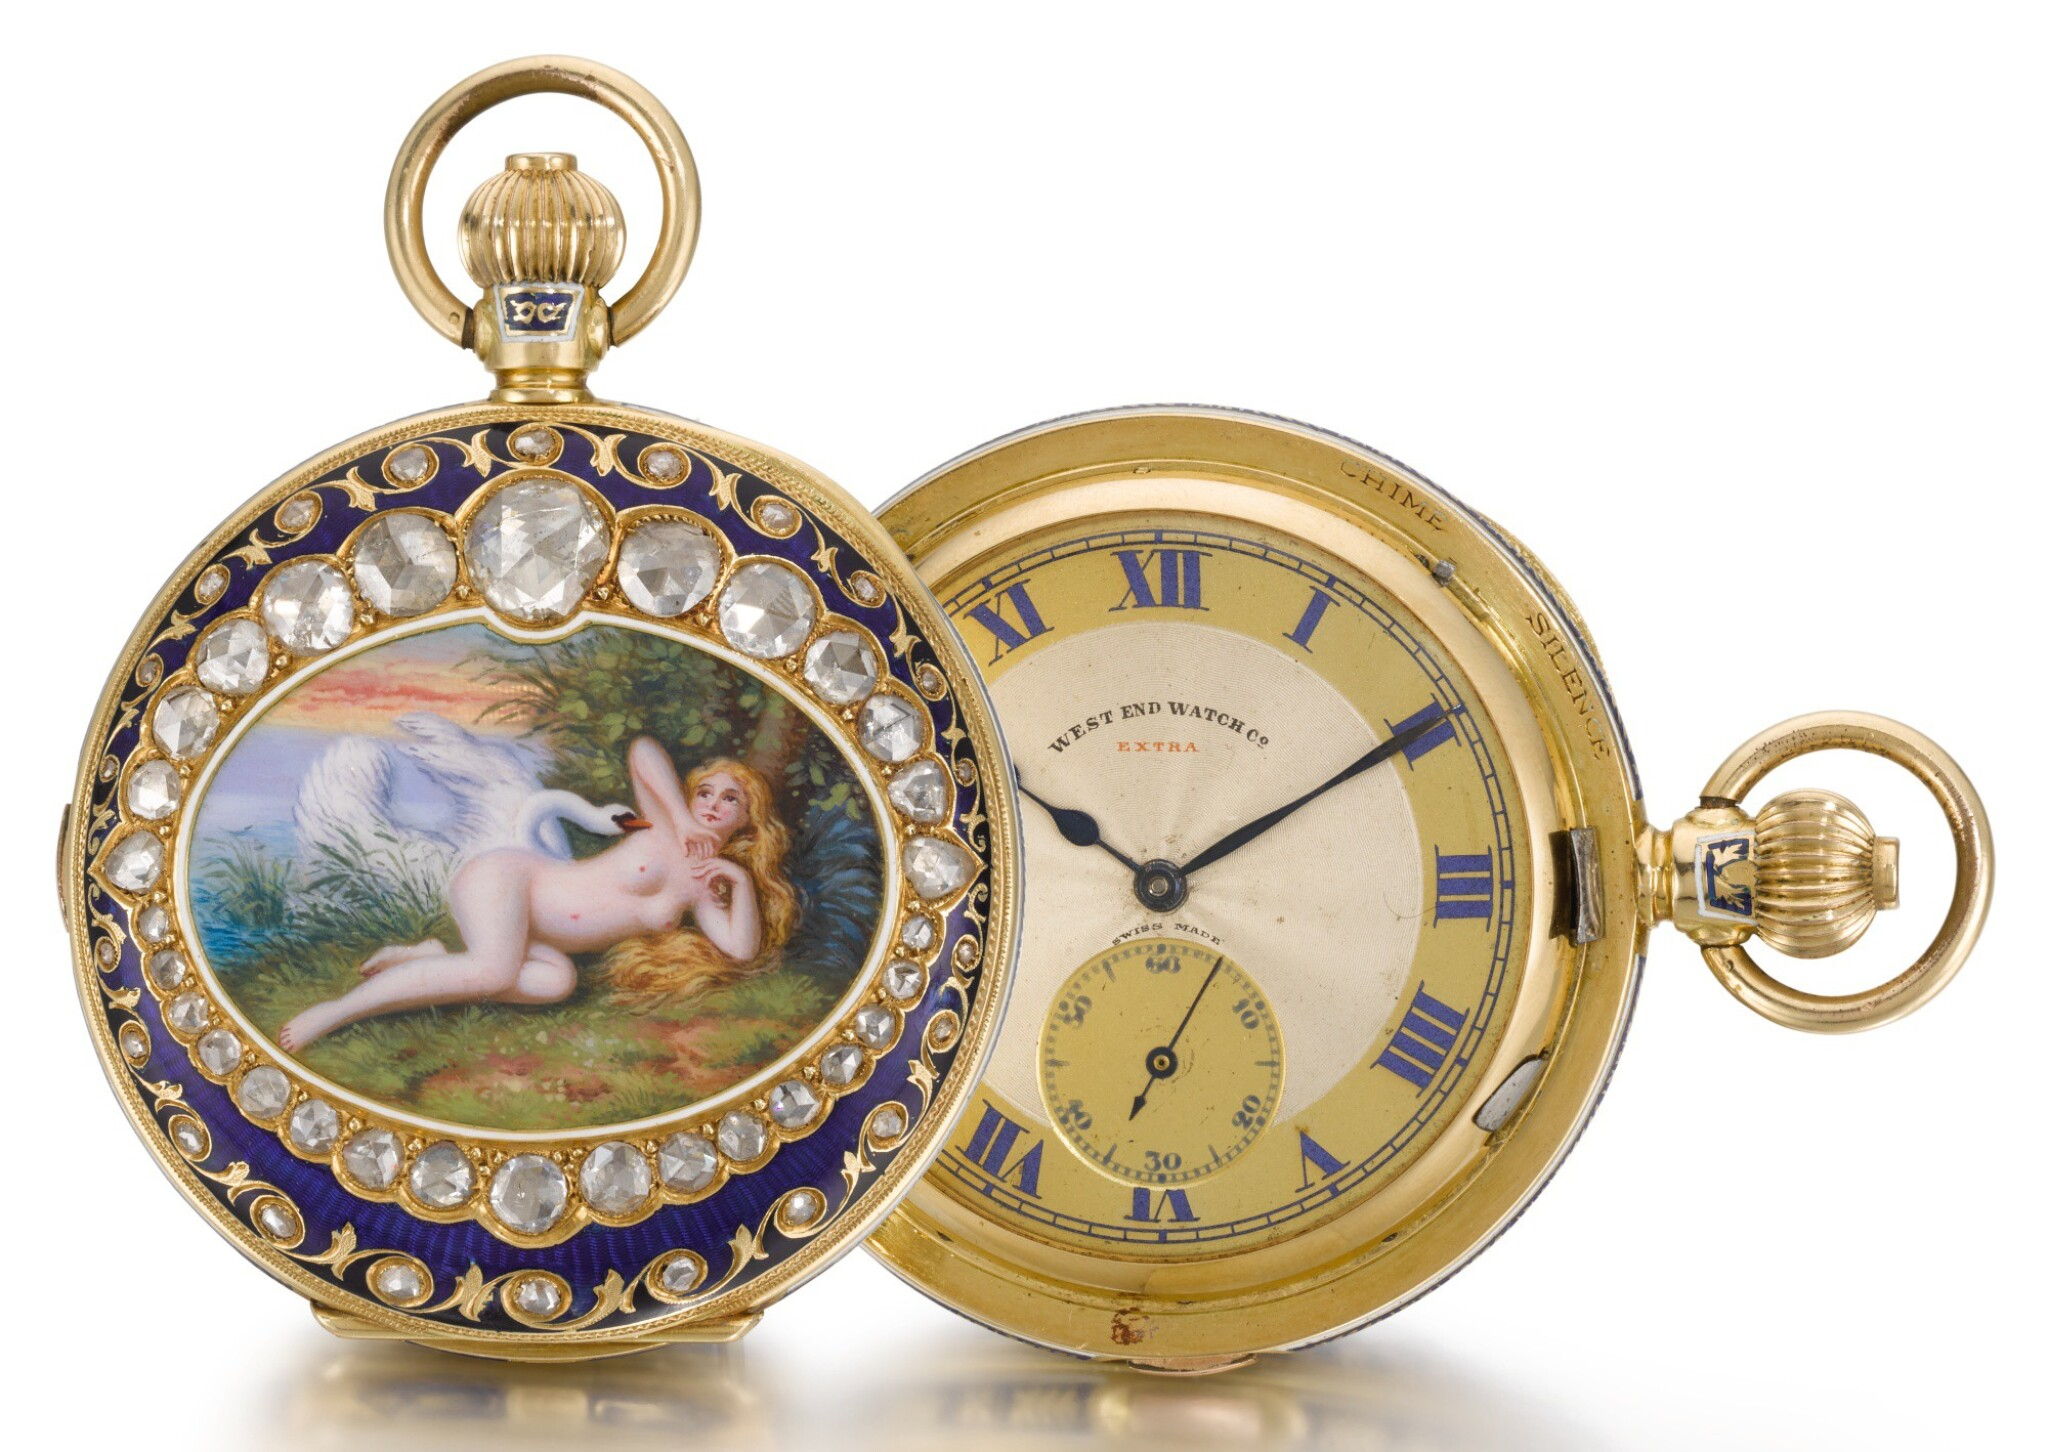 View full screen - View 1 of Lot 228. WEST END WATCH CO.   A GOLD, ENAMEL AND DIAMOND-SET HALF-HUNTING CASED MINUTE REPEATING CLOCK WATCH MADE FOR THE INDIAN MARKET   CIRCA 1910.